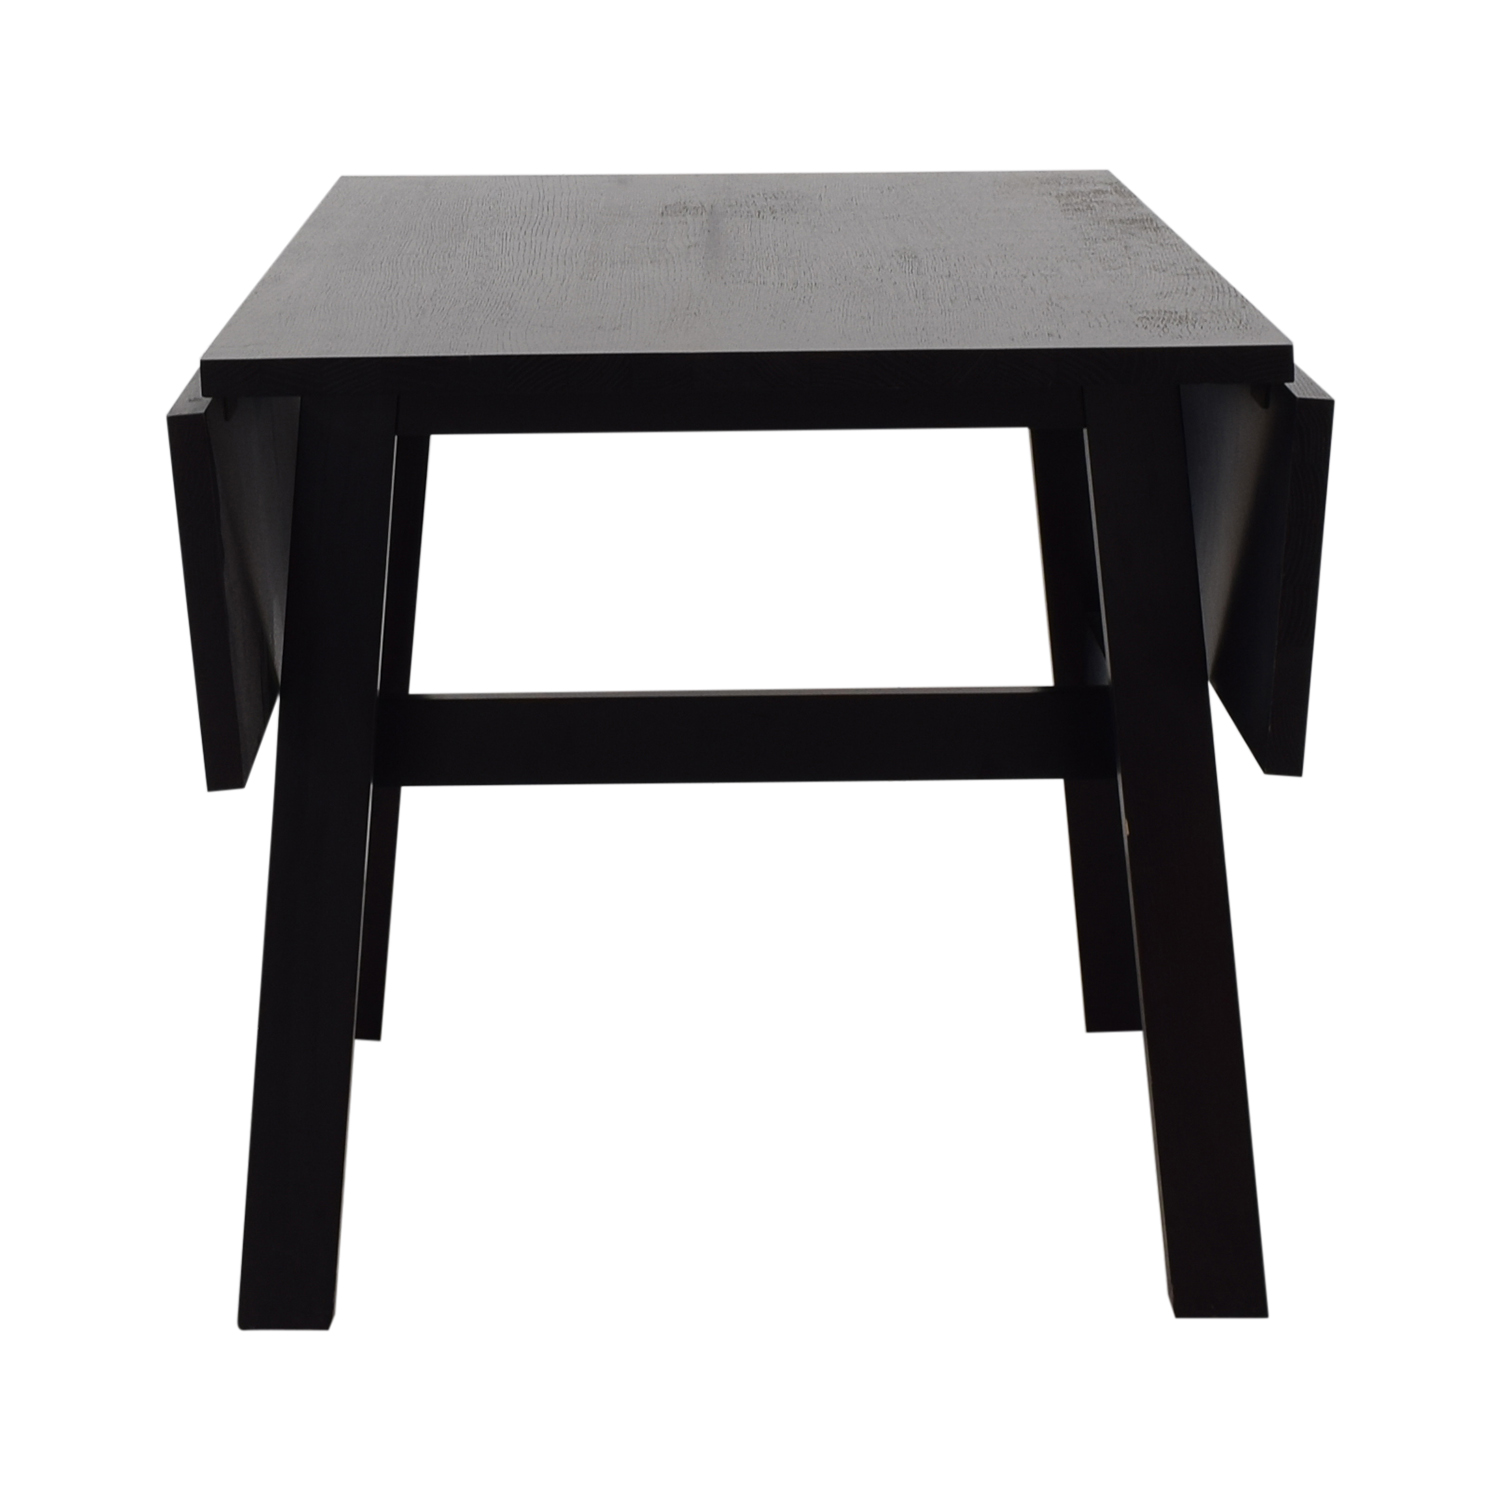 Crate & Barrel Crate & Barrel Black Wood Dining Table Tables